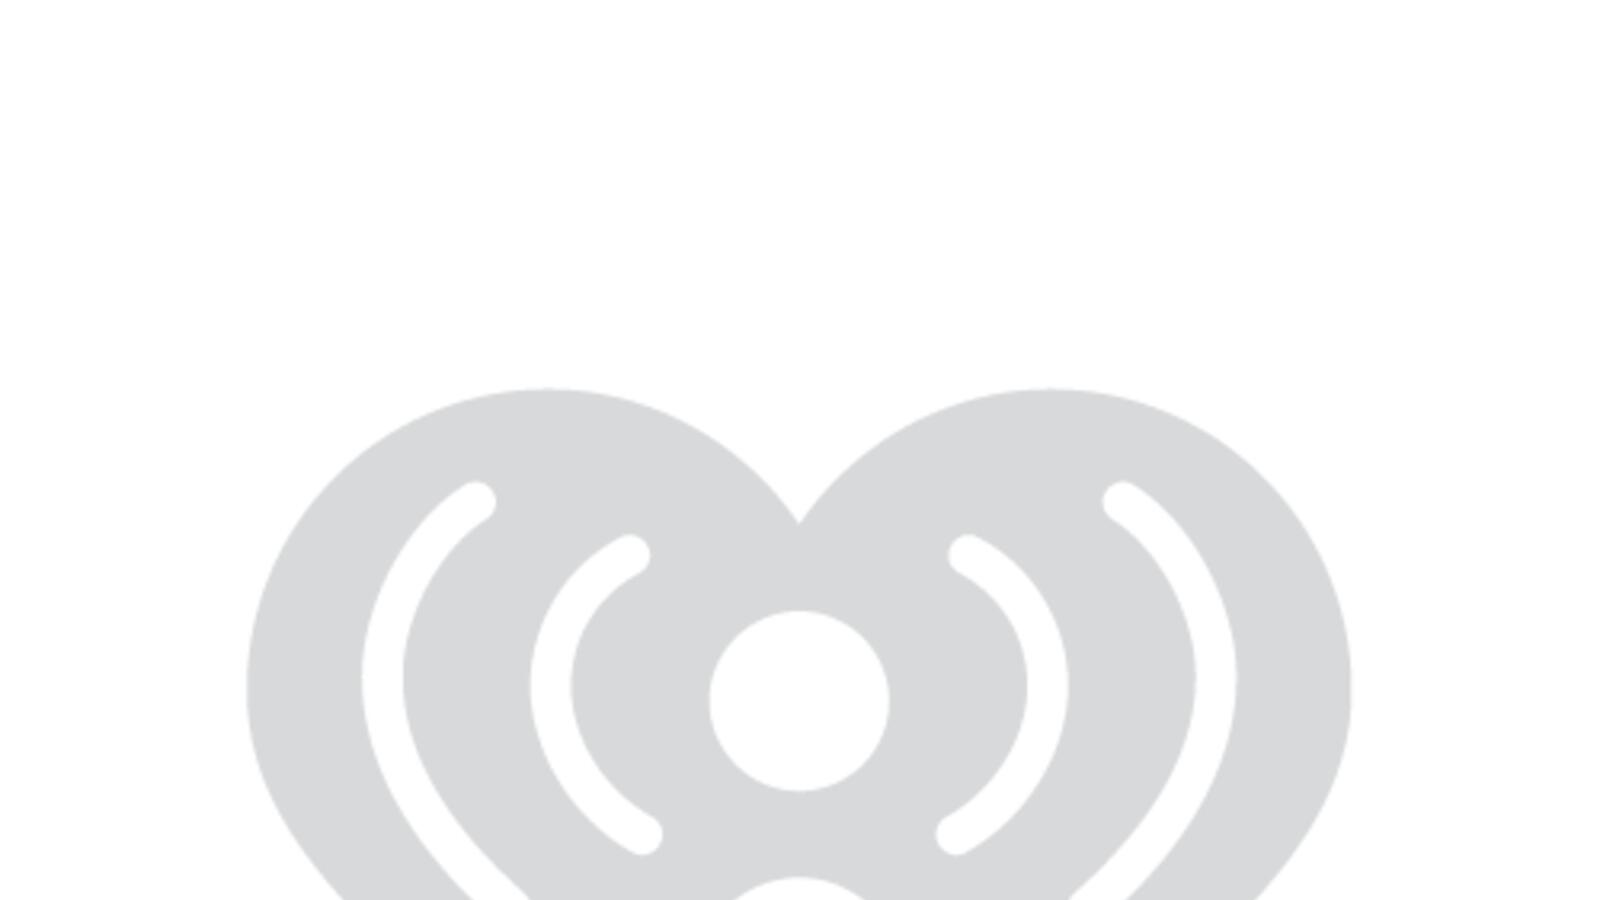 Tom Brady Announced Partnership With The Weeknd in the Best Way Possible